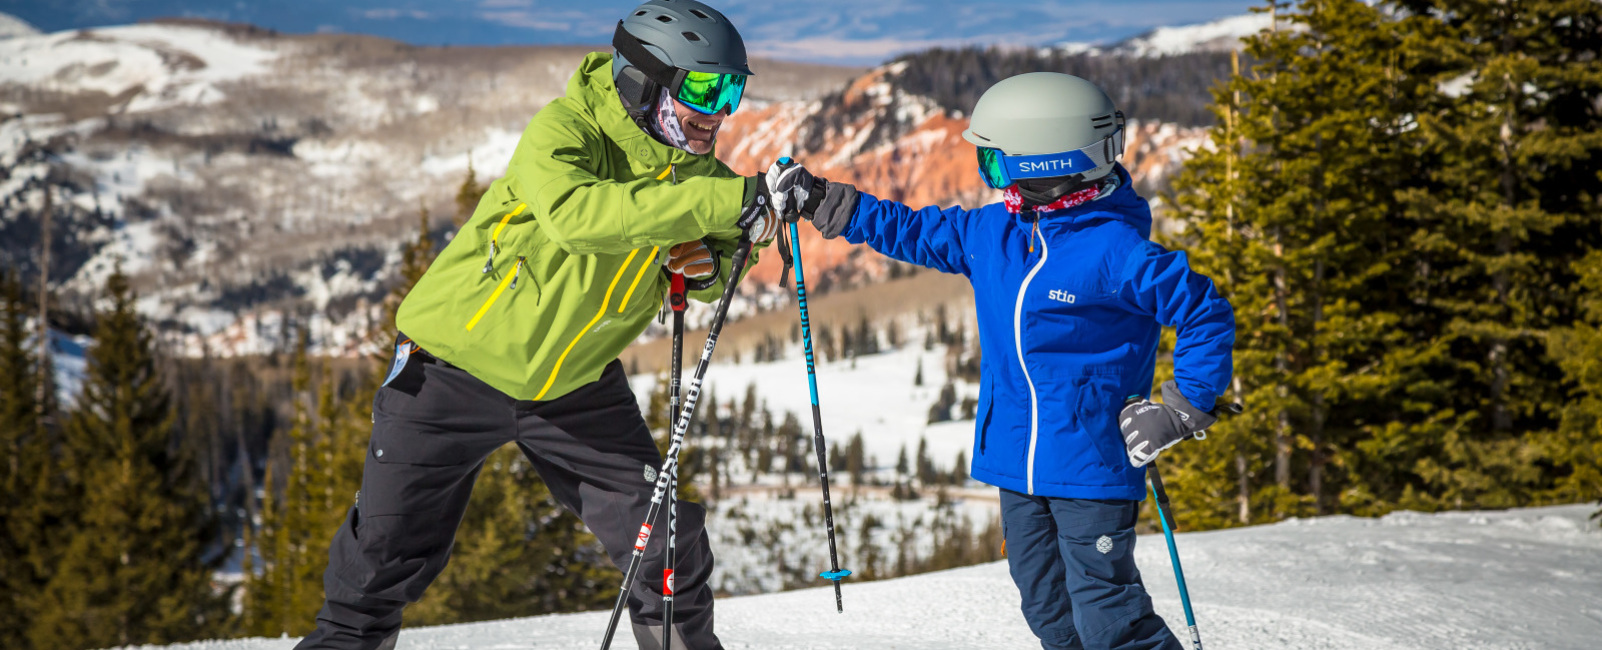 Exploring Utah's Smaller Resorts with the 5th & 6th Grade Passport